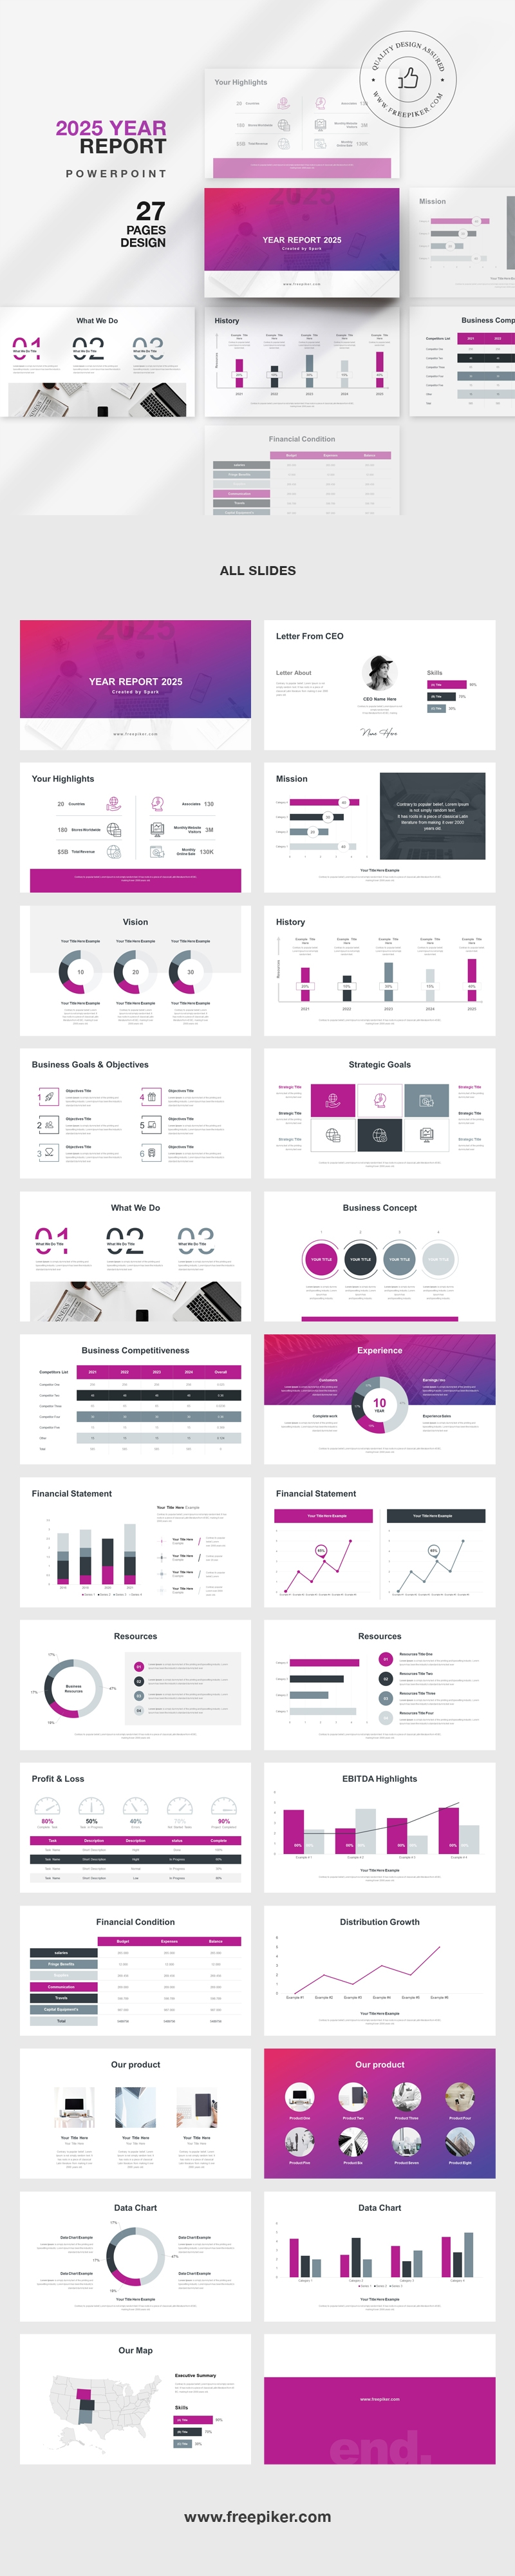 2025 Year Report PowerPoint Template